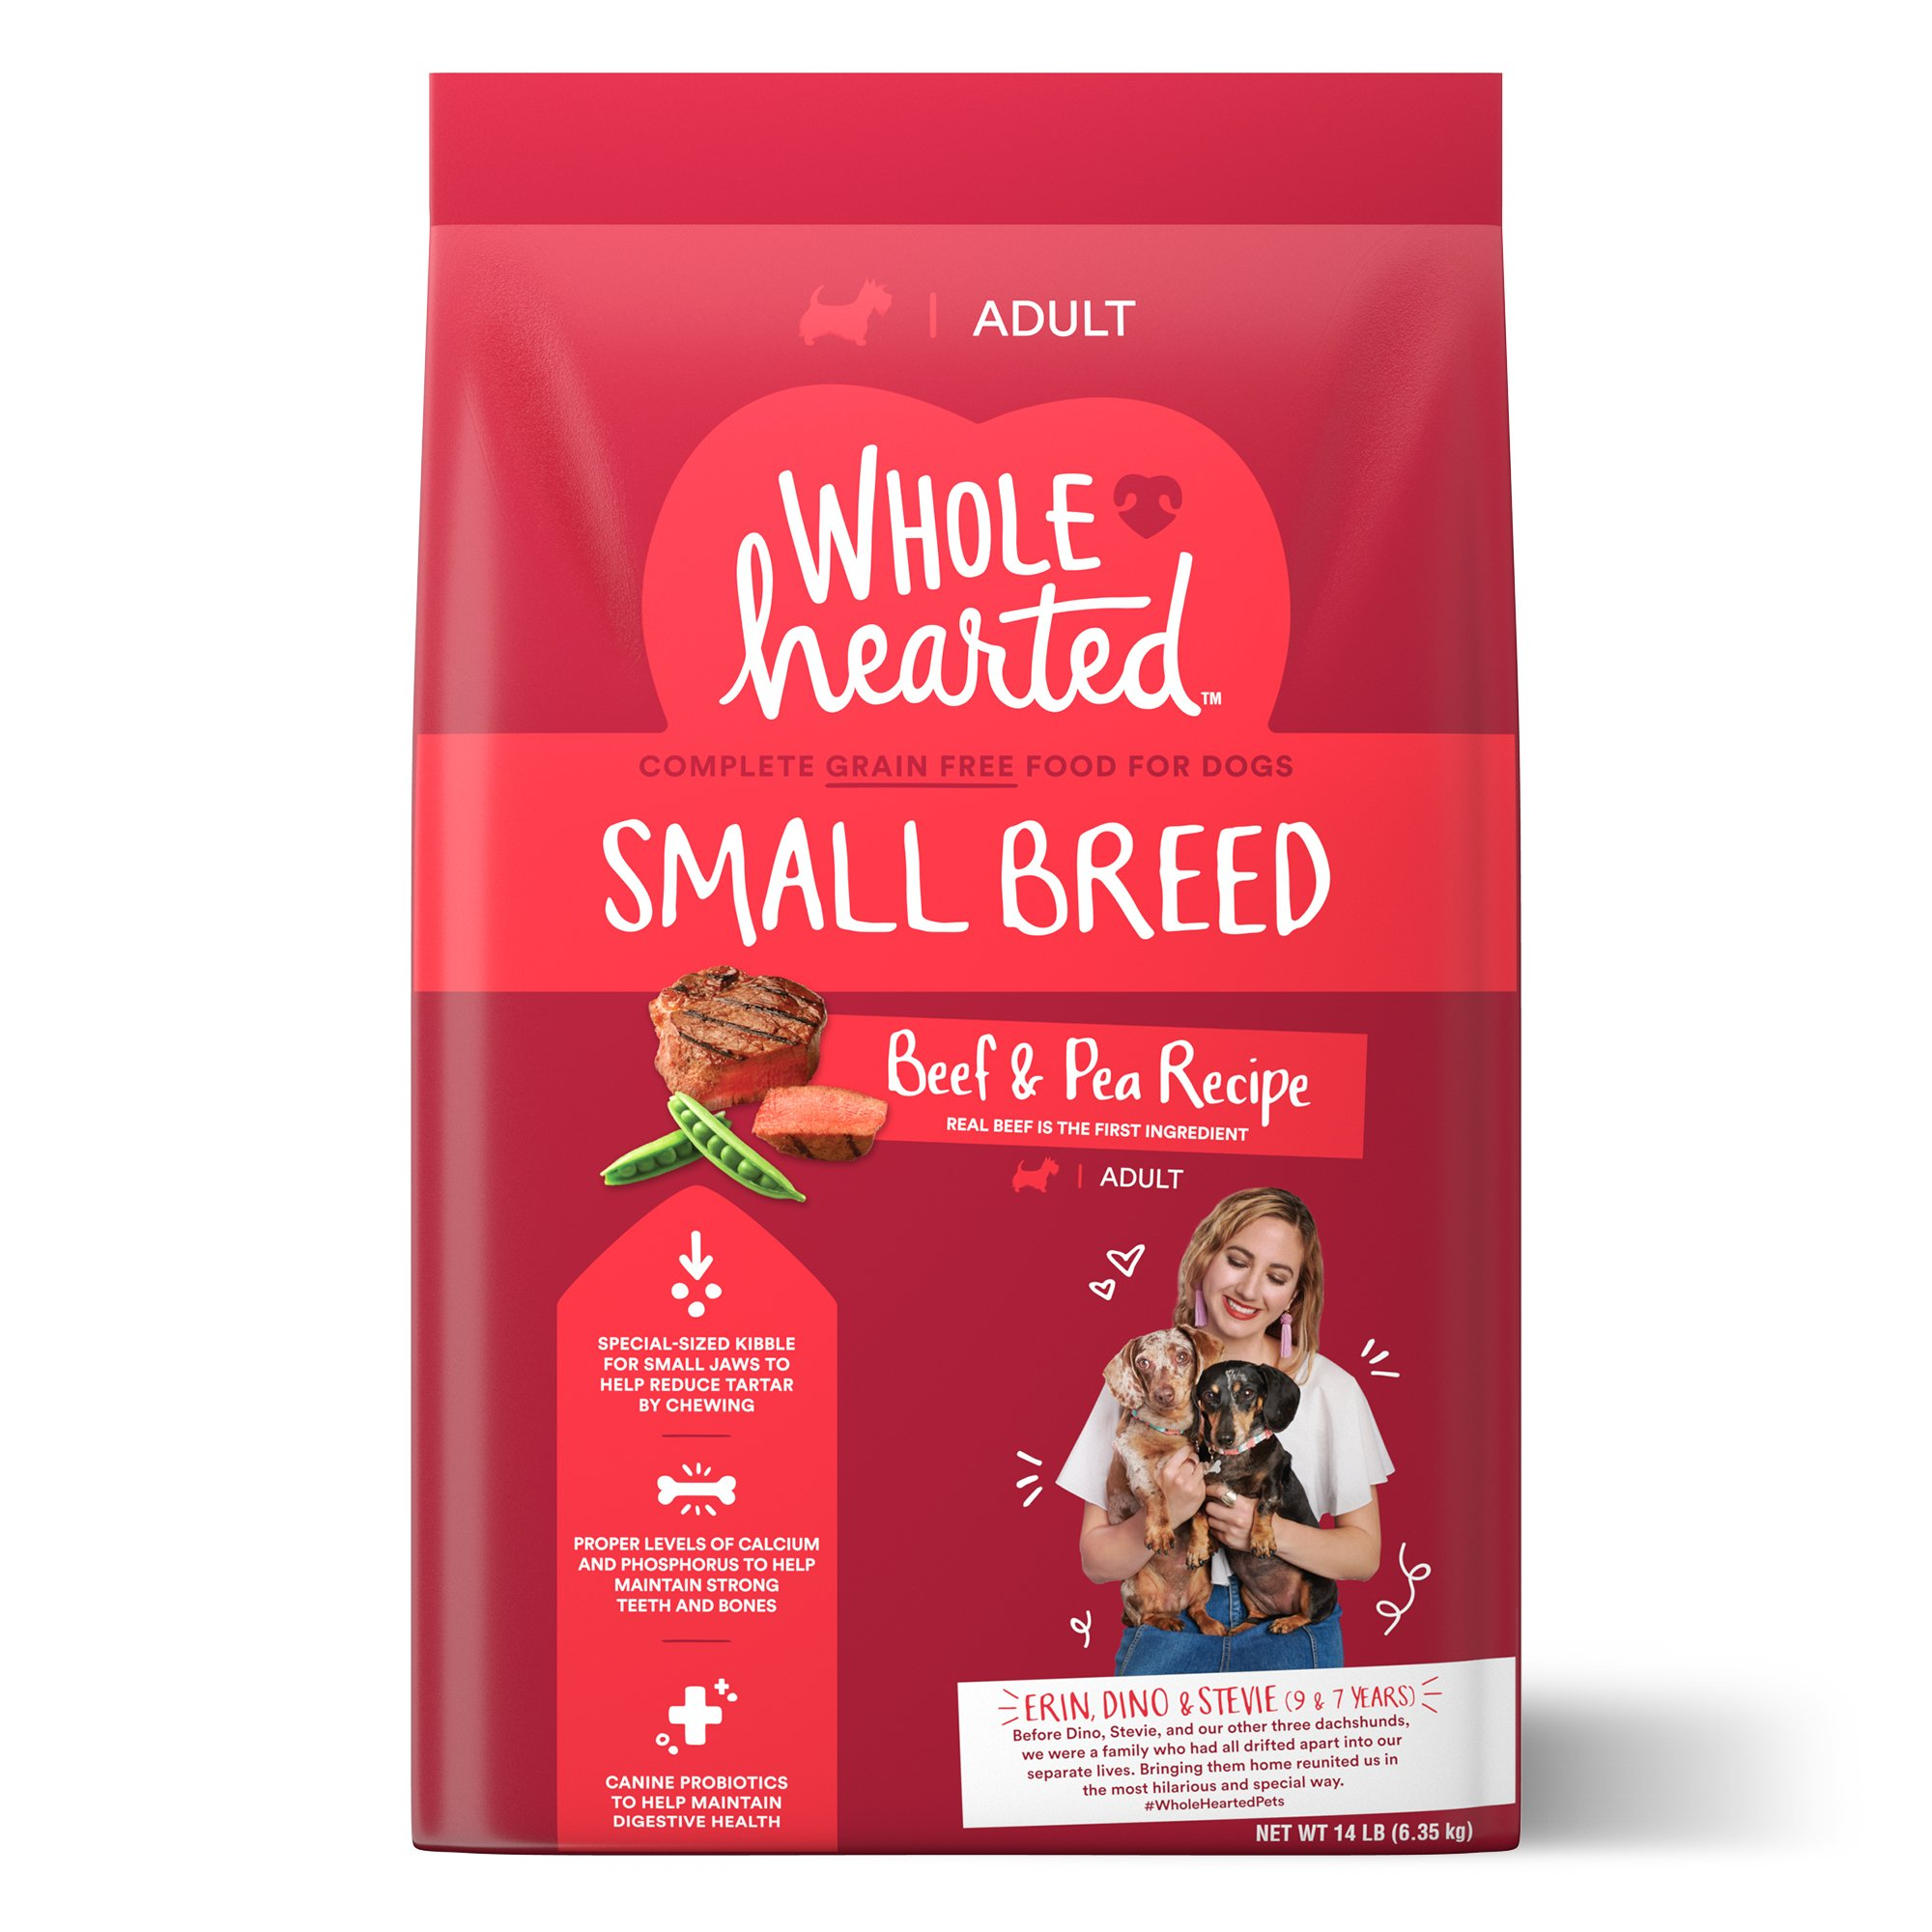 WholeHearted Grain Free Small-Breed Beef and Pea Recipe Adult Dry Dog Food, 14 lbs.